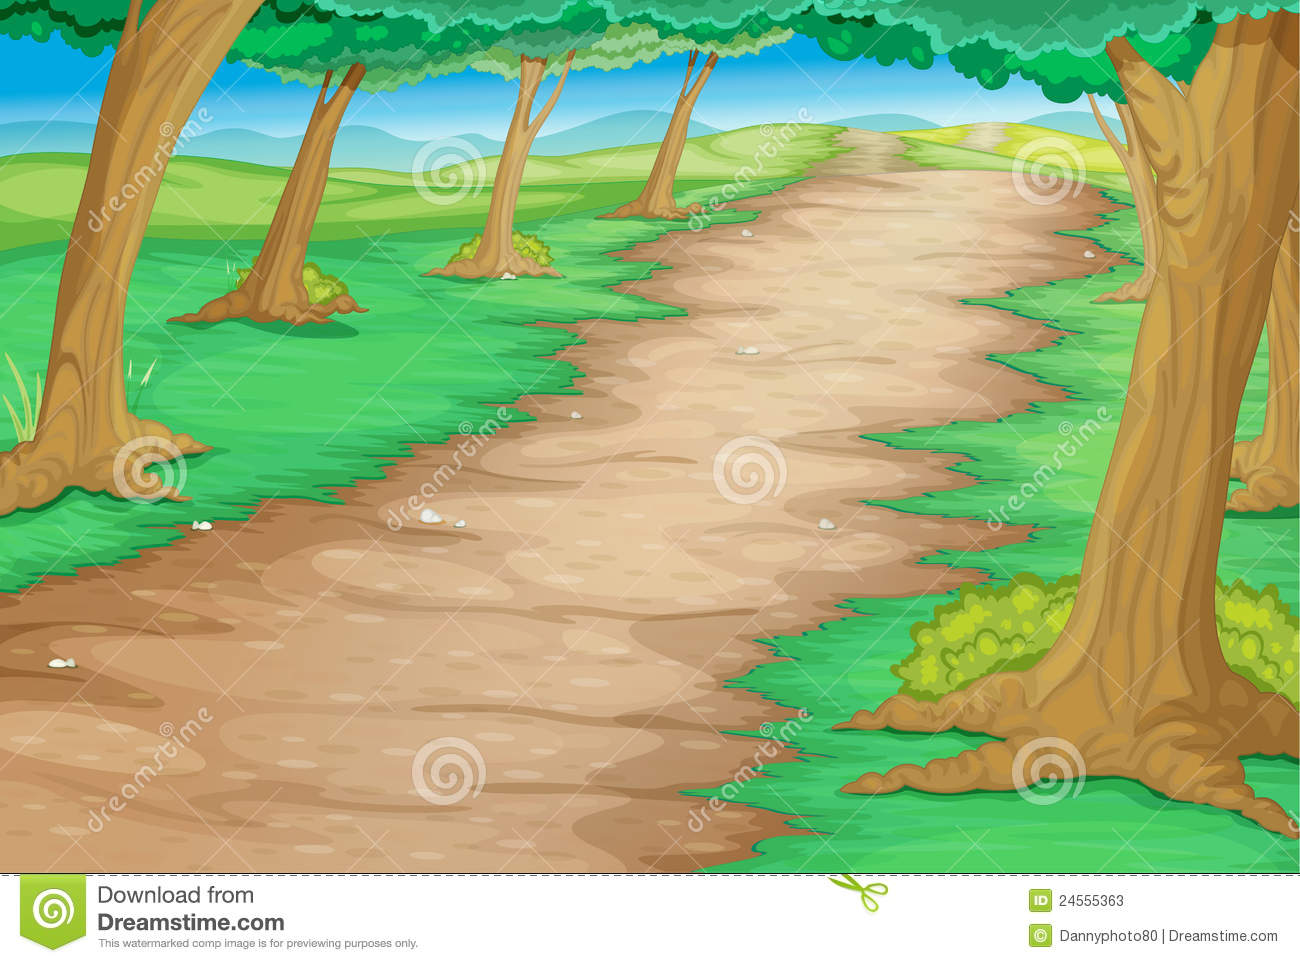 Trails clipart - Clipground